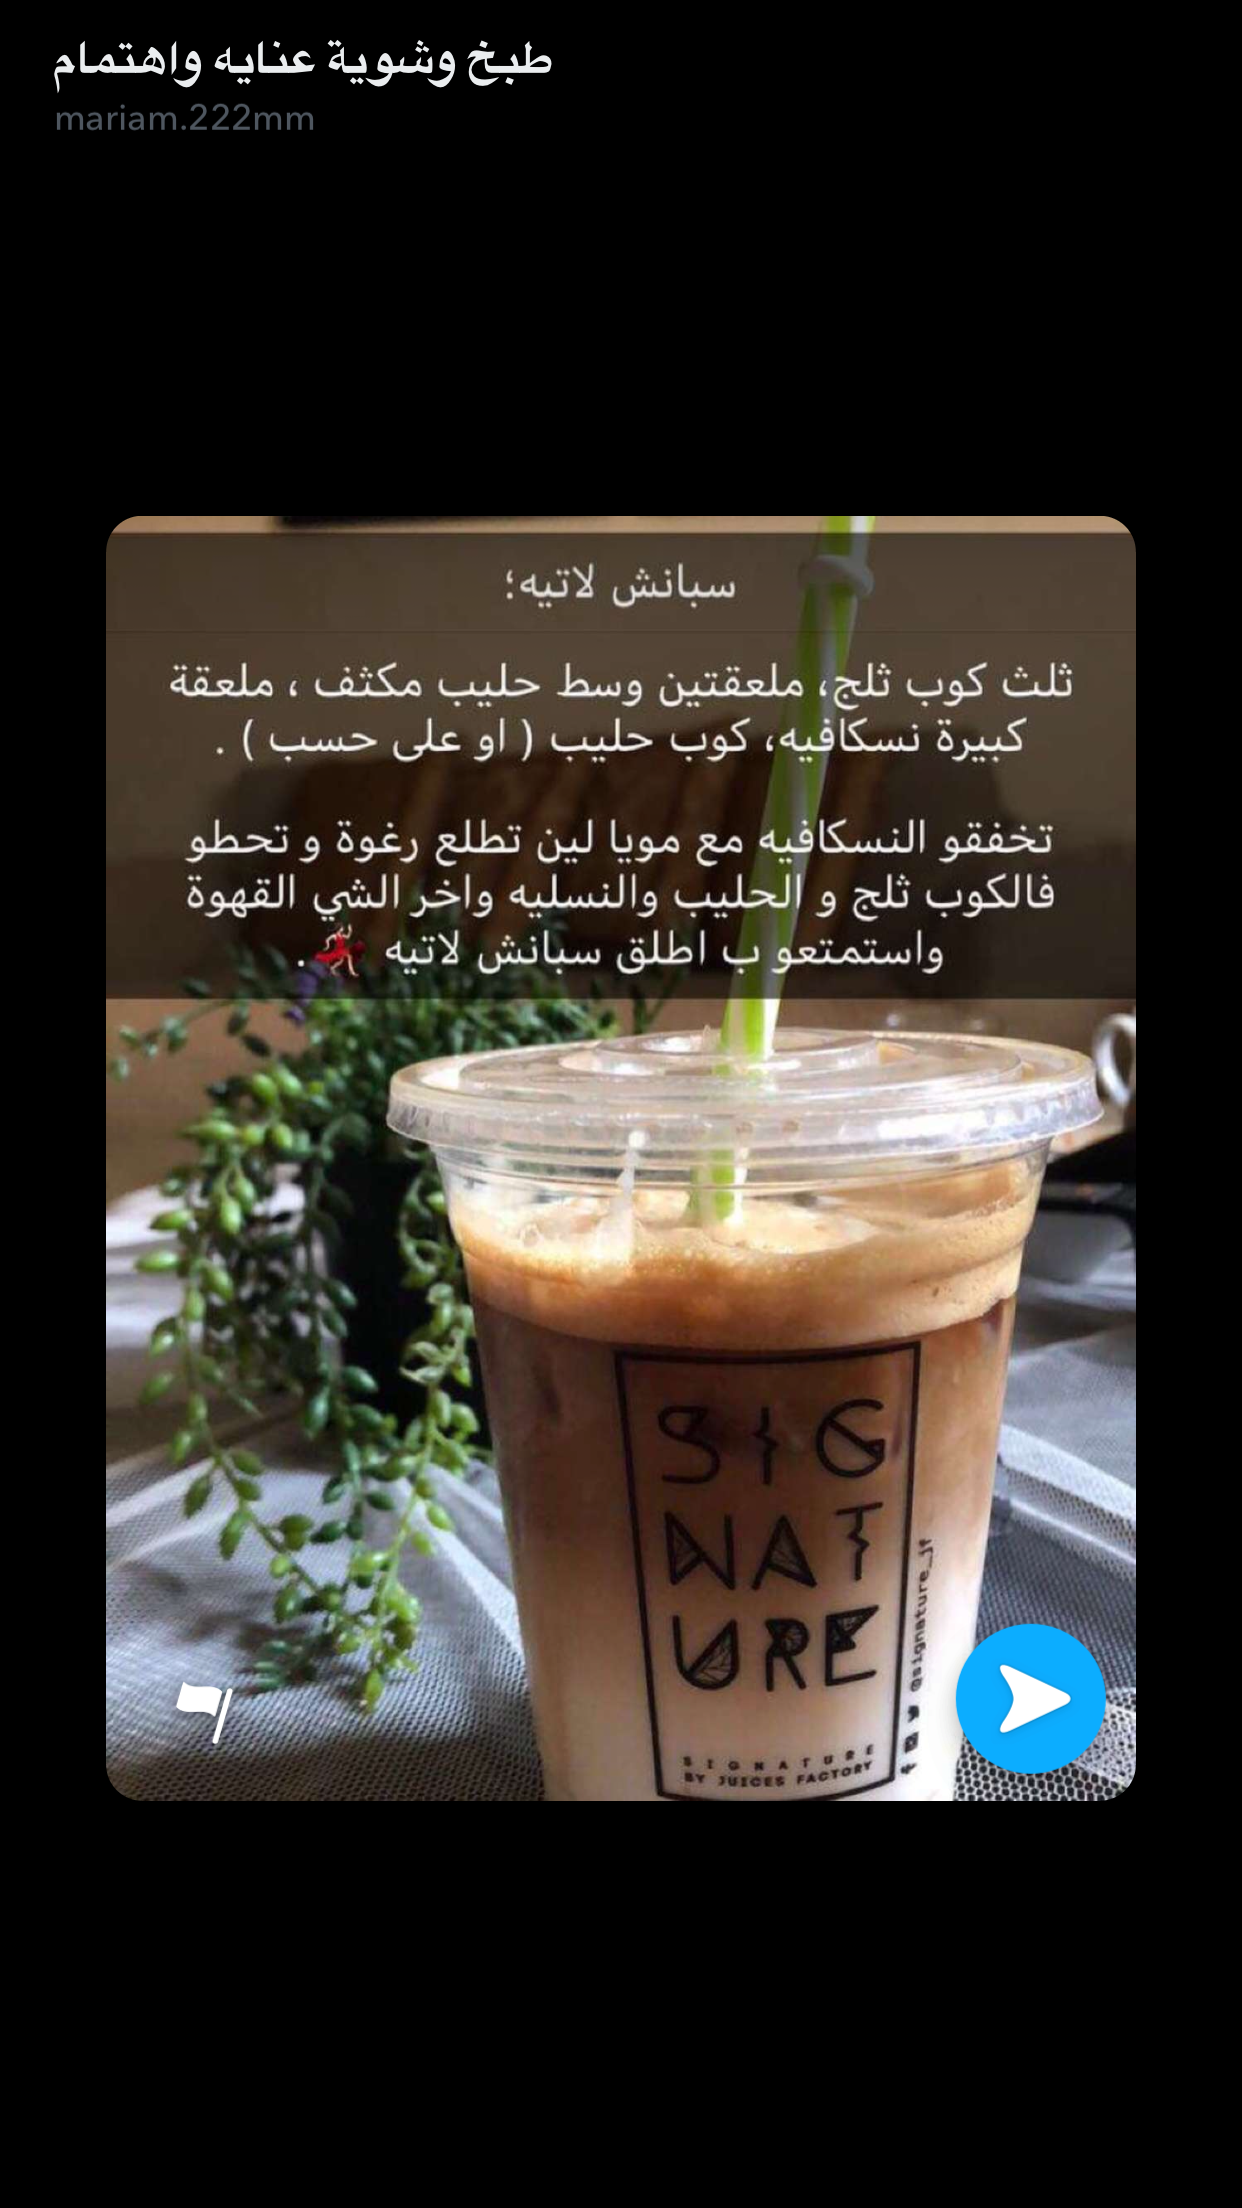 Pin By Walaaalzaabi On طبخ Coffee Drink Recipes Cold Coffee Recipes Starbucks Recipes